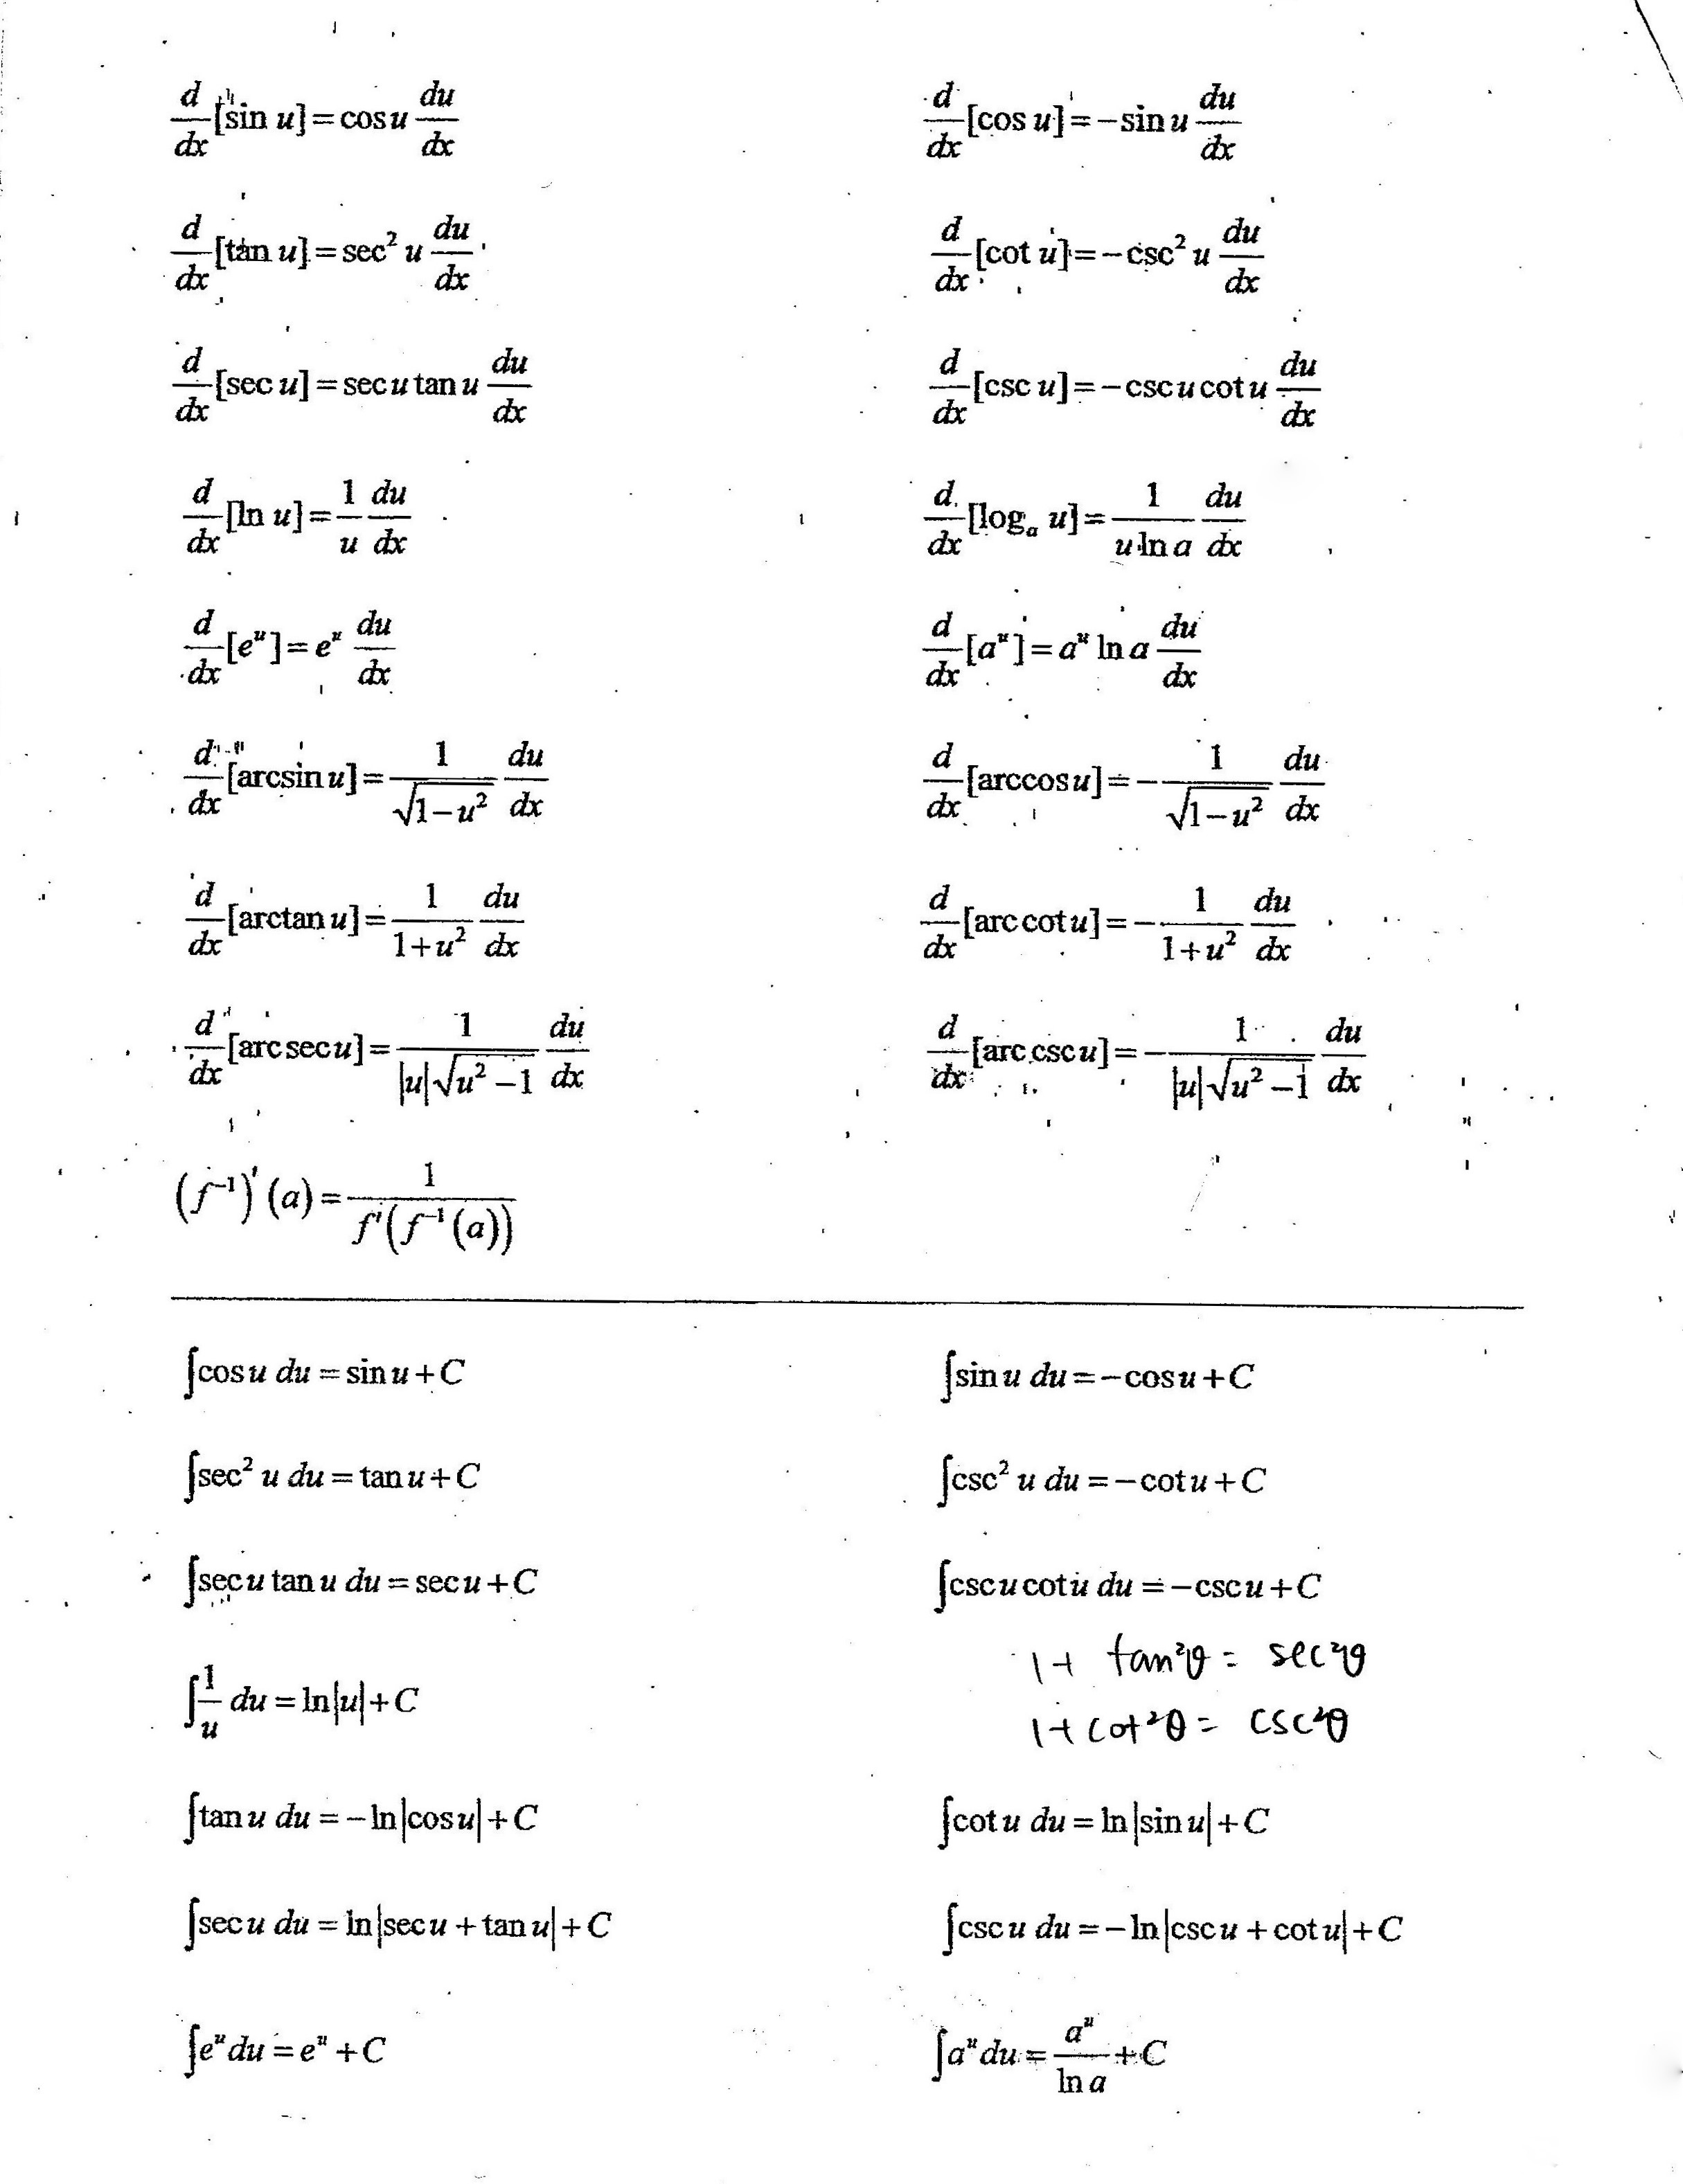 Math 53 - Section 1 - Multivariable Calculus - Spring 2012